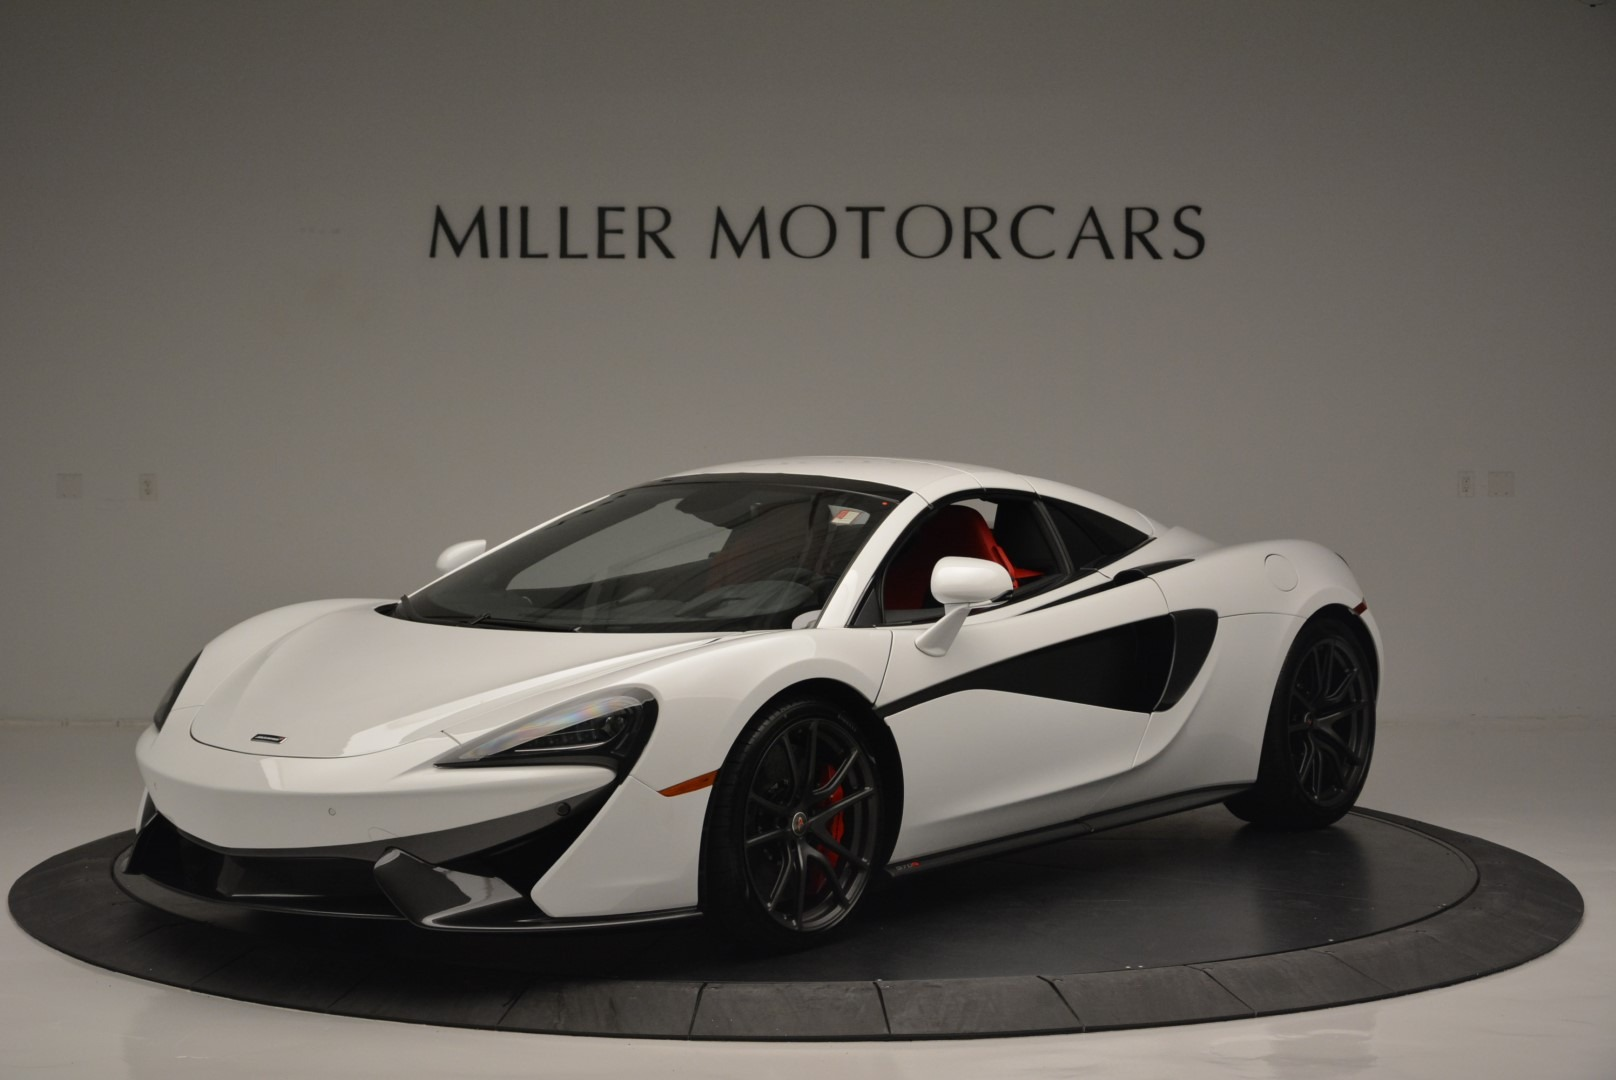 Used 2018 McLaren 570S Spider For Sale In Greenwich, CT. Alfa Romeo of Greenwich, 3149 2341_p14